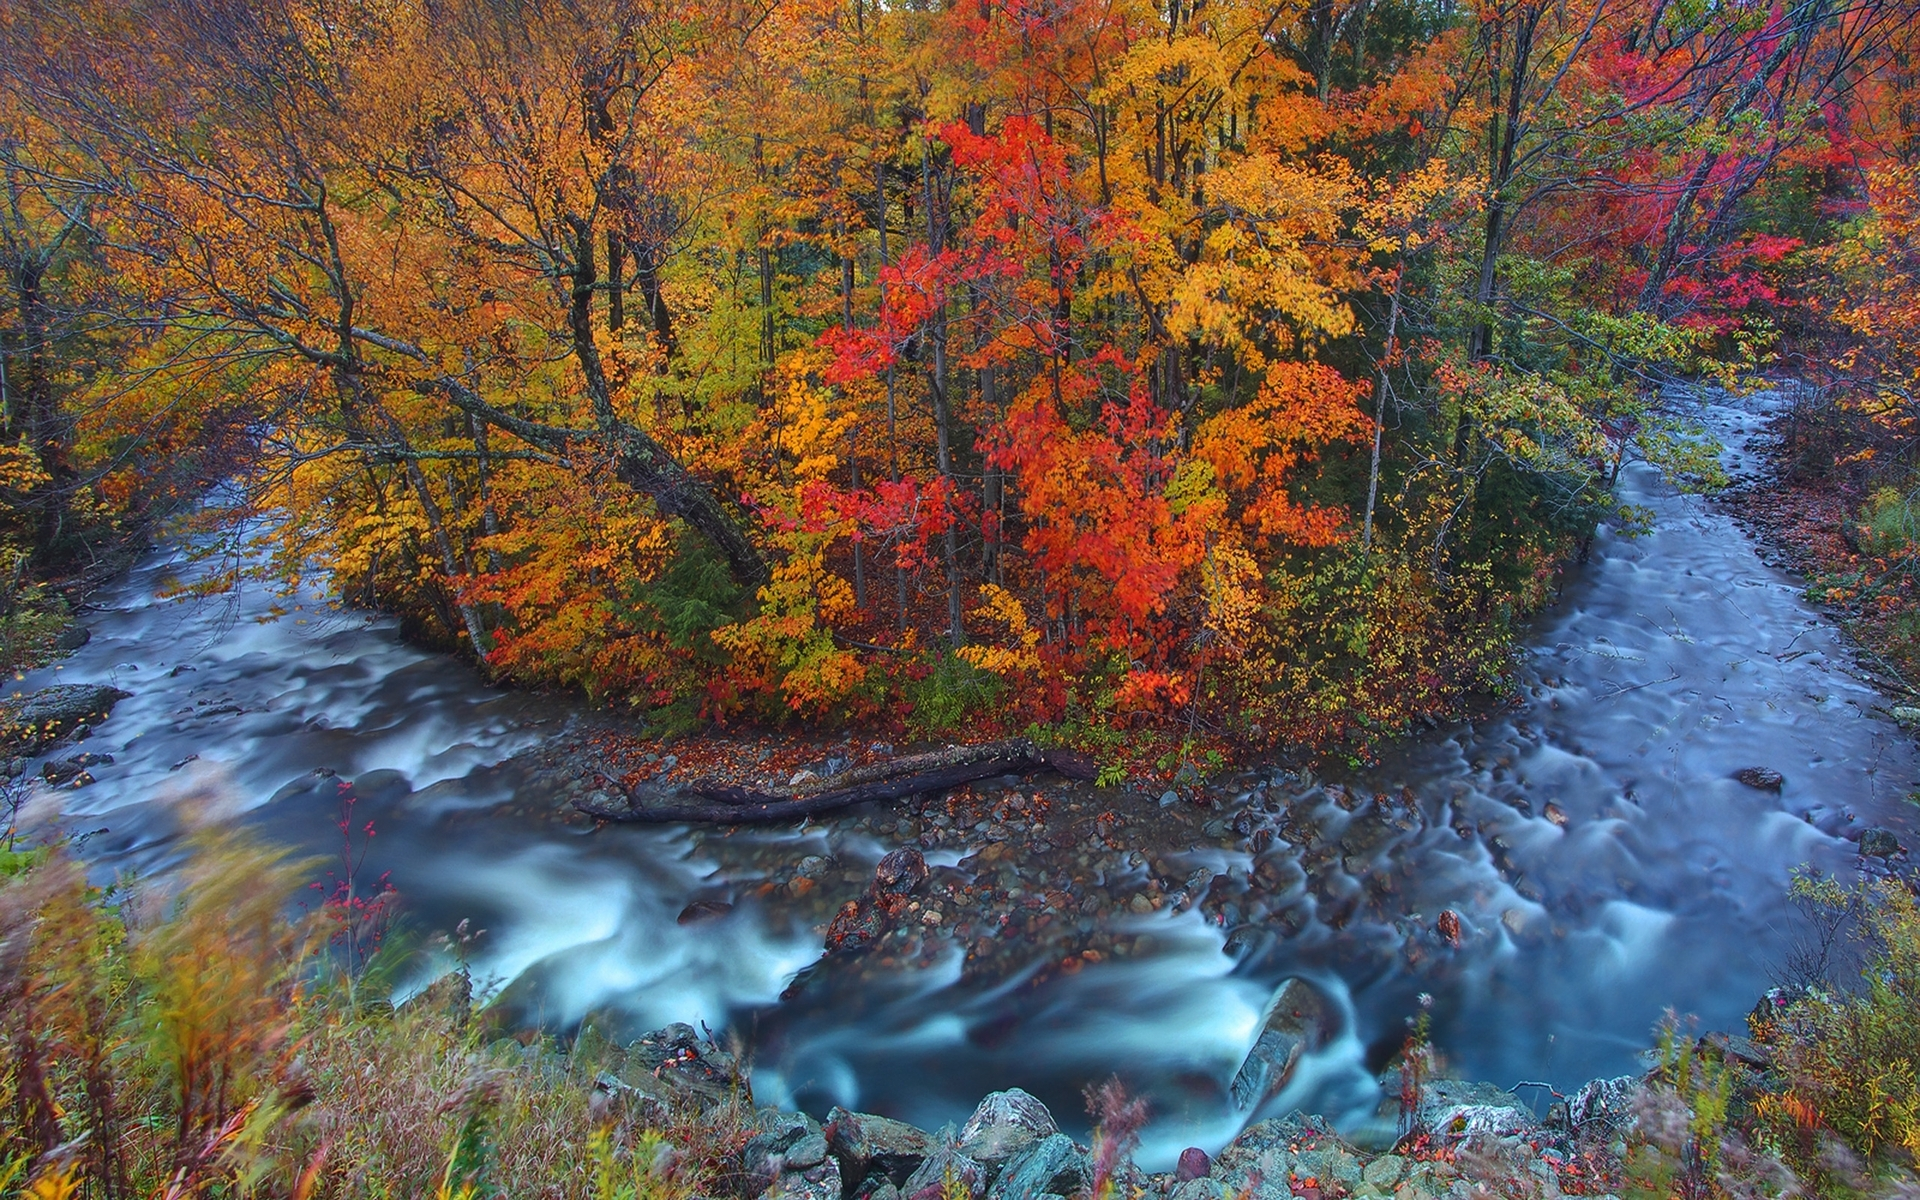 Fall Mountain Scenes Wallpaper Autumn Forest Amp Wild Stream Wallpapers Autumn Forest